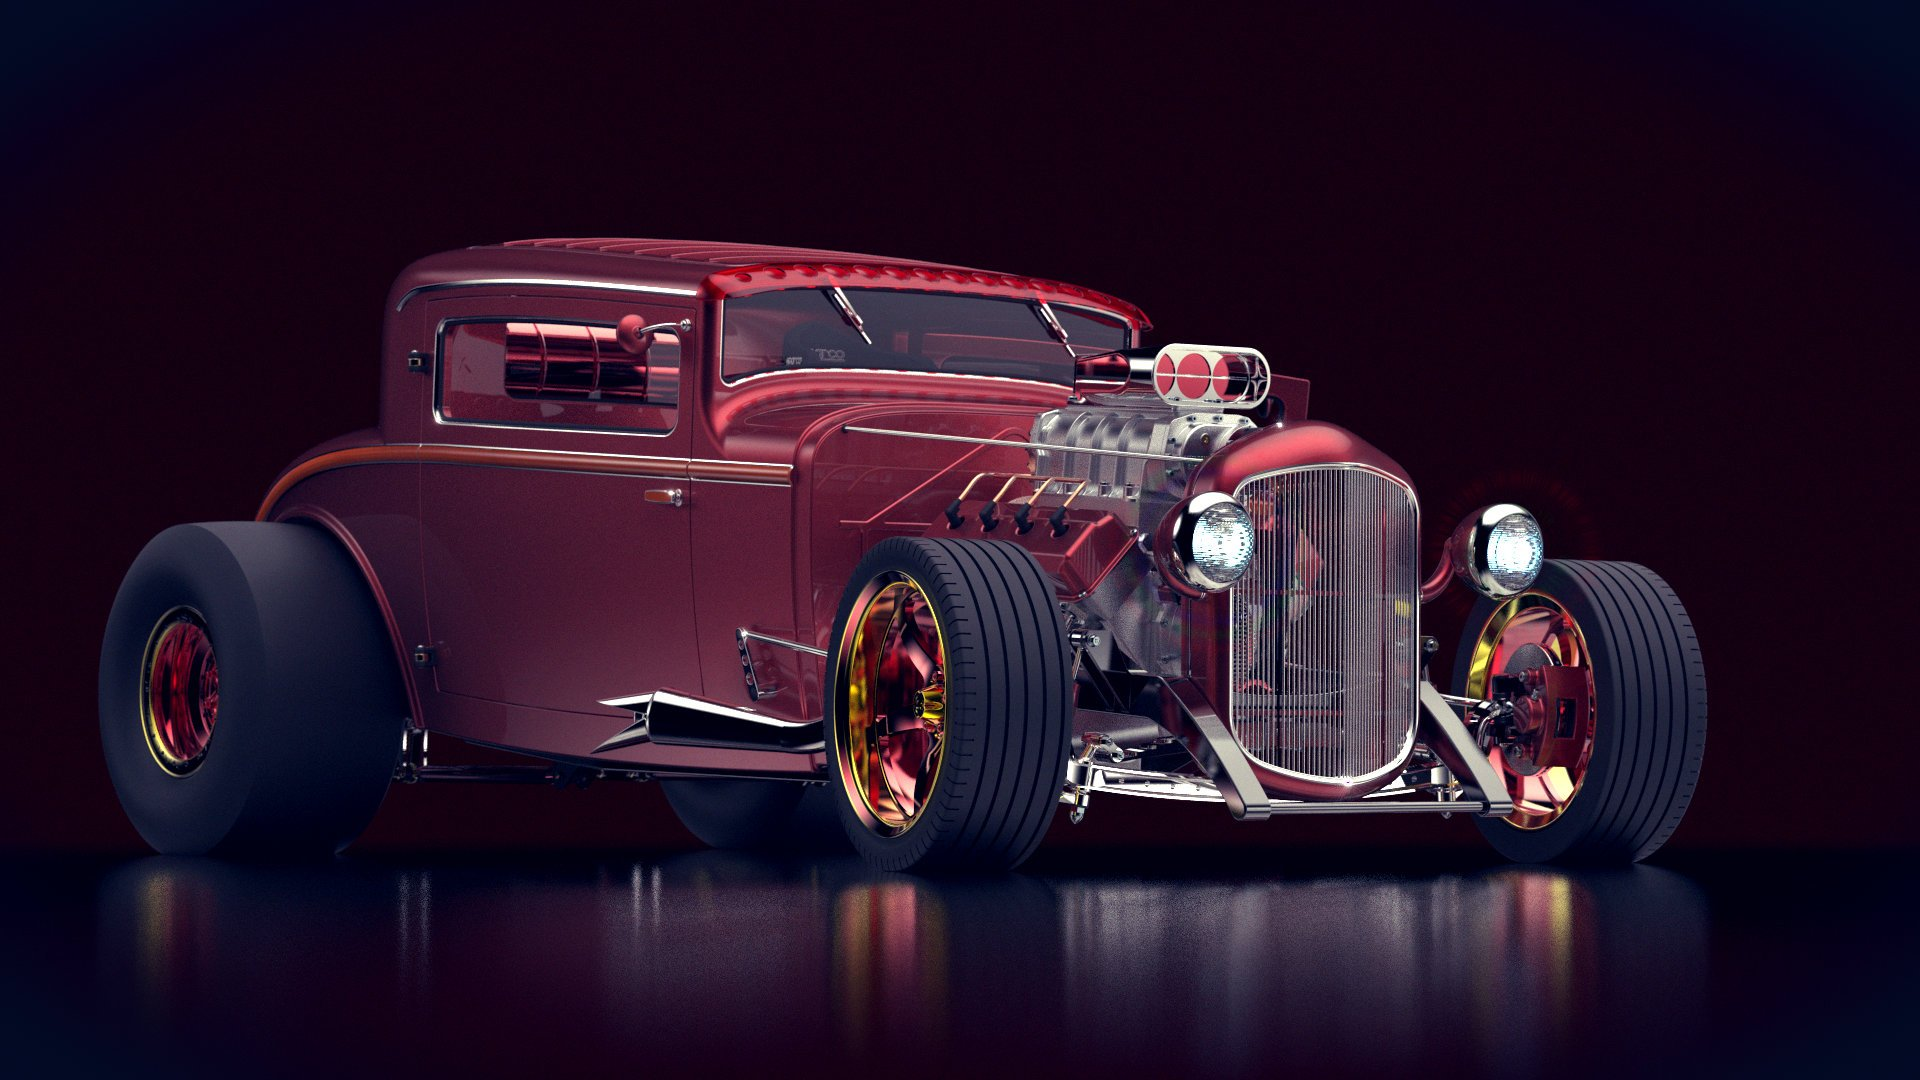 hot rods Hot rods and babes 46,196 likes 235 talking about this hot cars and hot babes an adult page don't like on this page if you can't handle the heat.